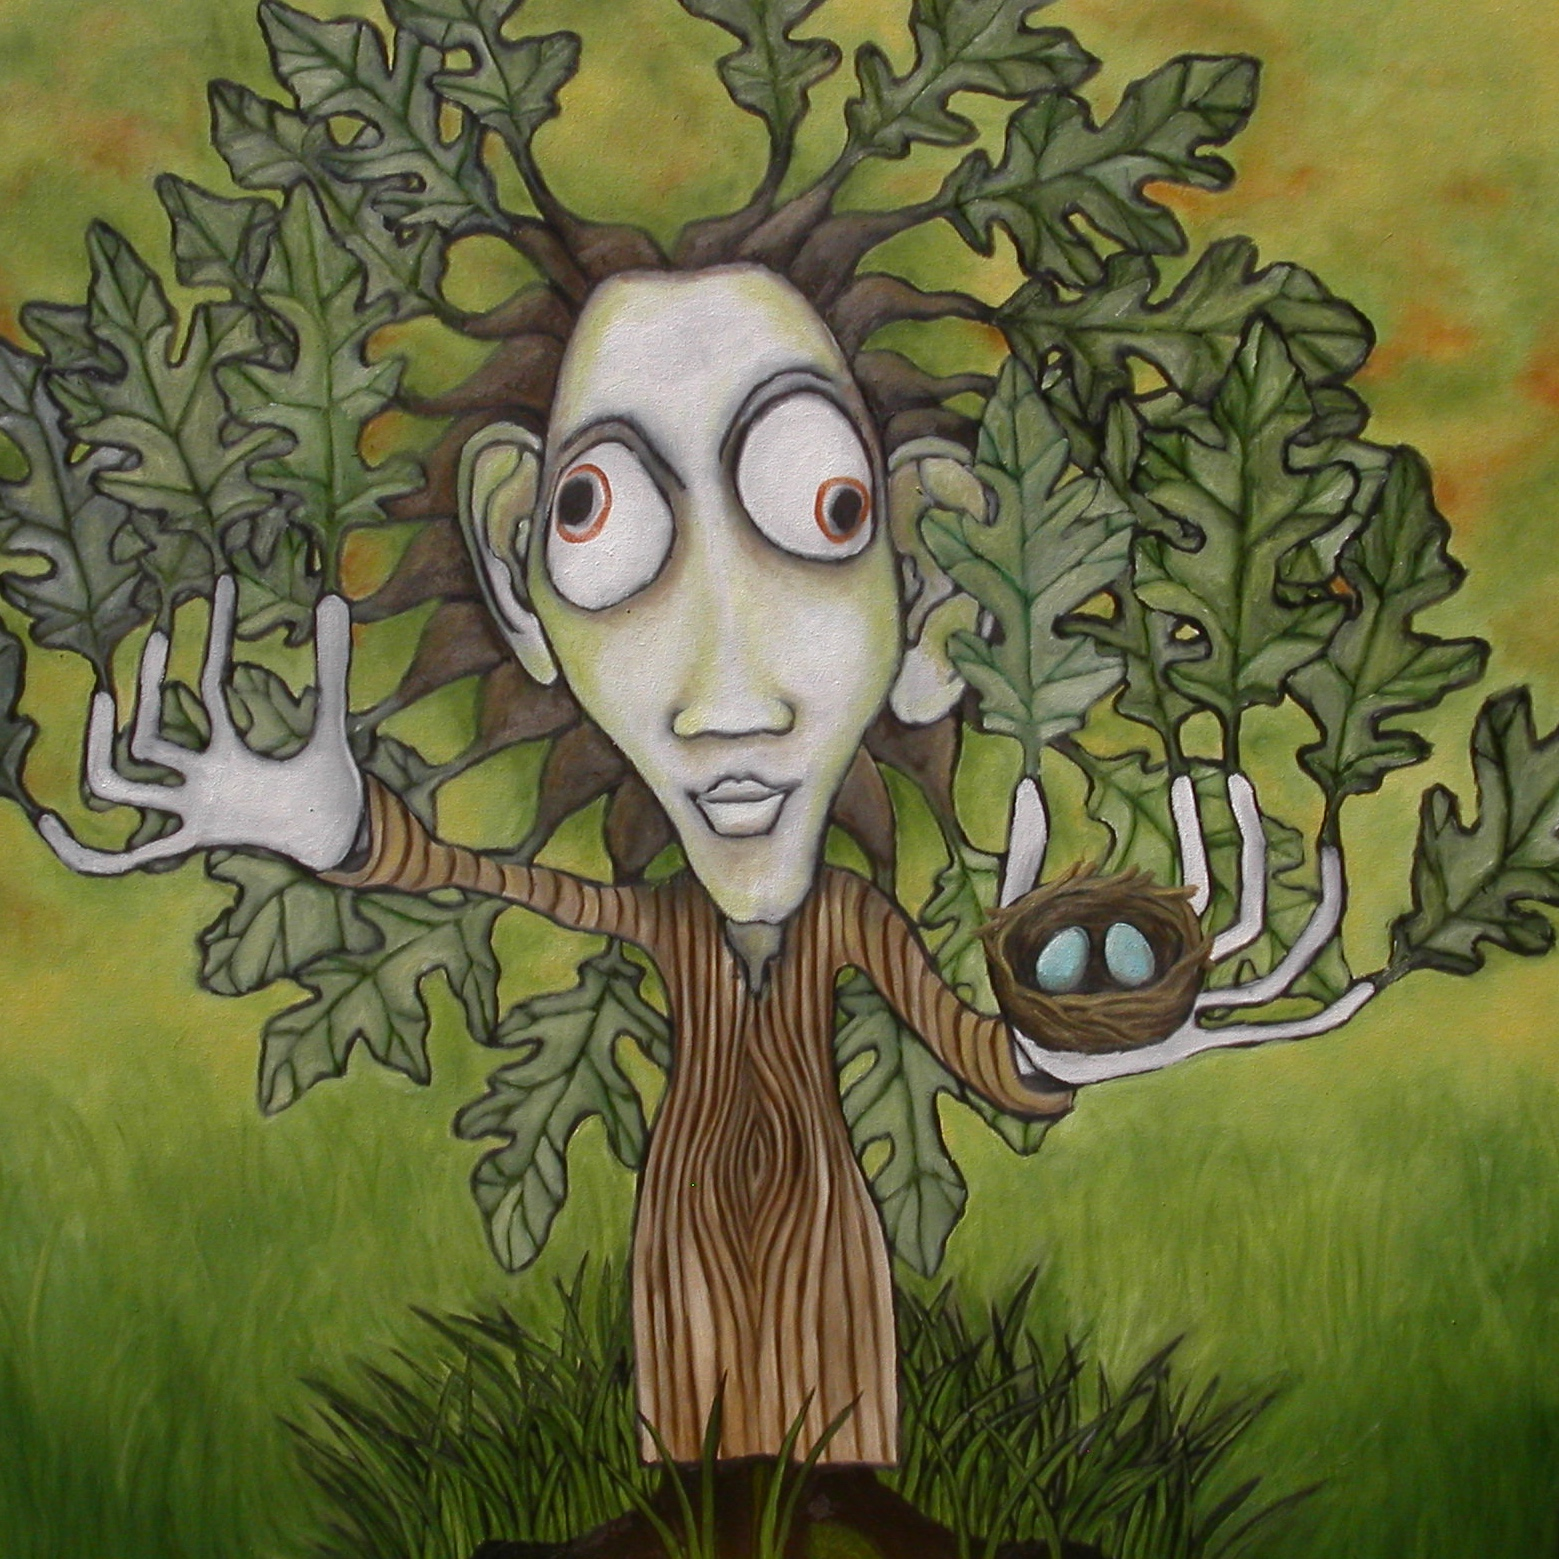 Woman as Tree